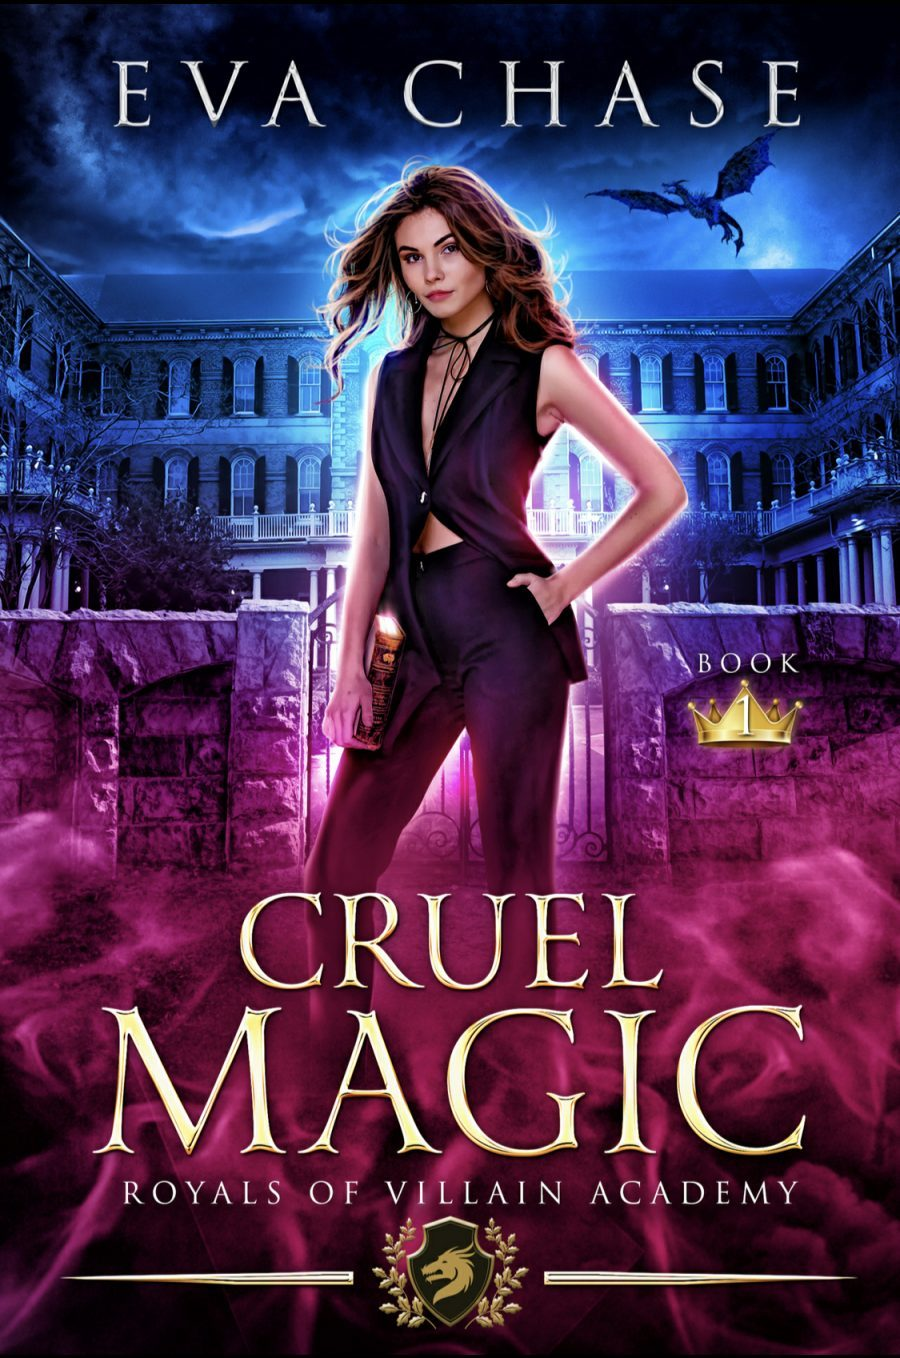 Cruel Magic by Eva Chase - A Book Review #BookReview #RH #WhyChoose #SlowBurn #ReverseHarem #Academy #Magic #WouldRecommend #Villains